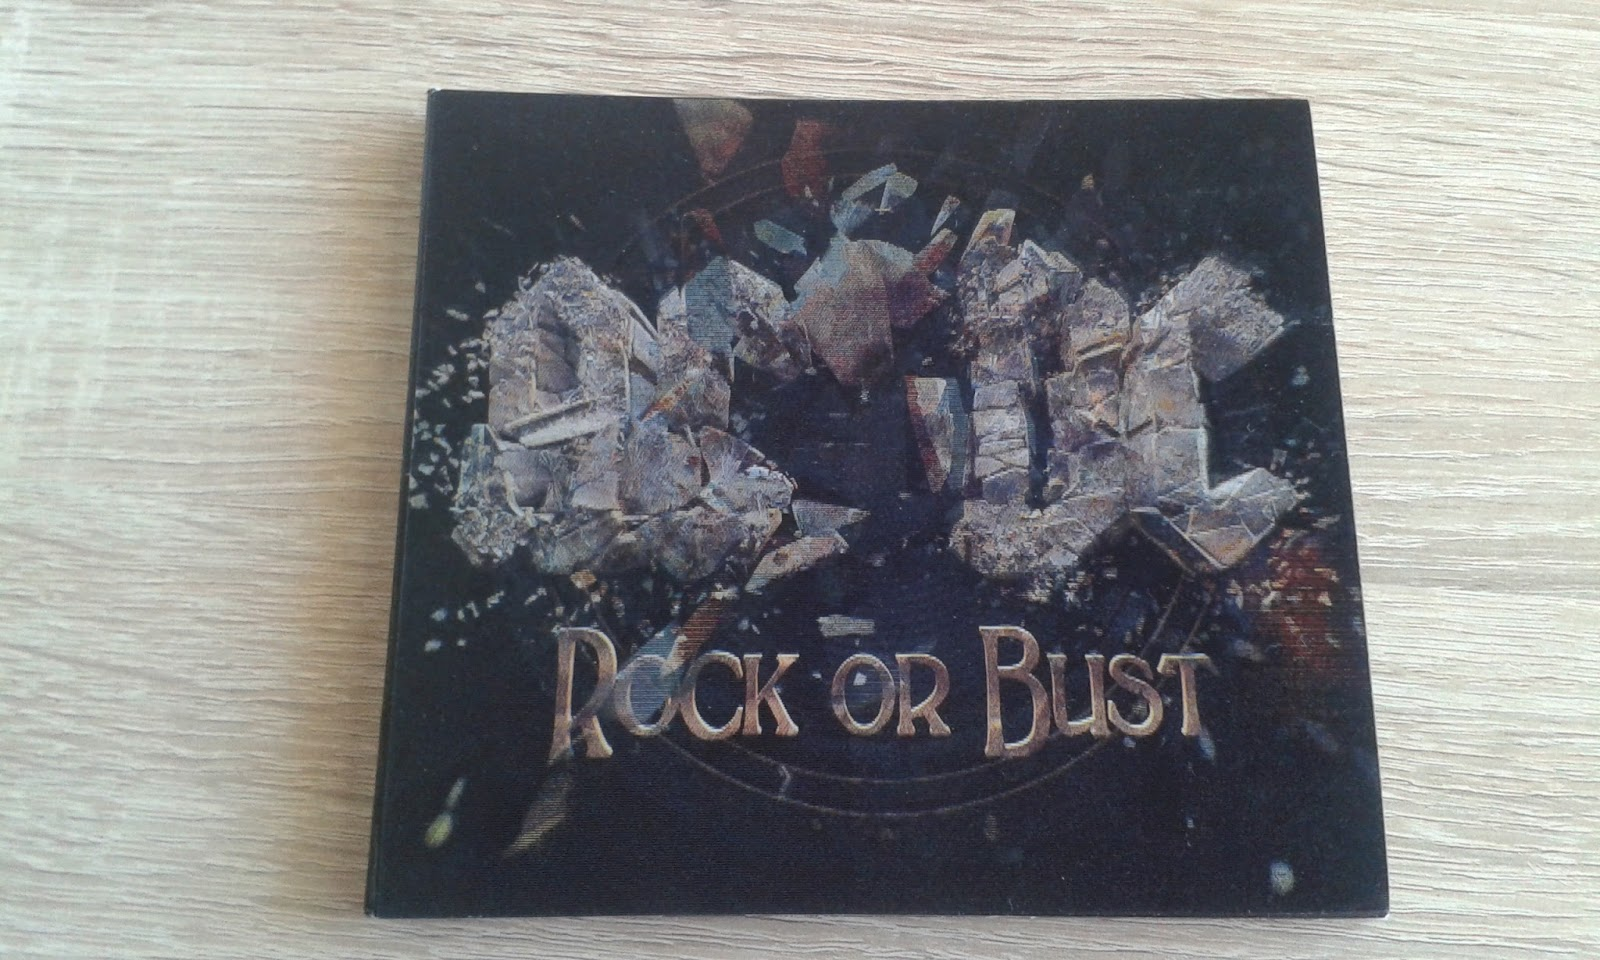 AC/DC, ROCK OR BUST (2015)